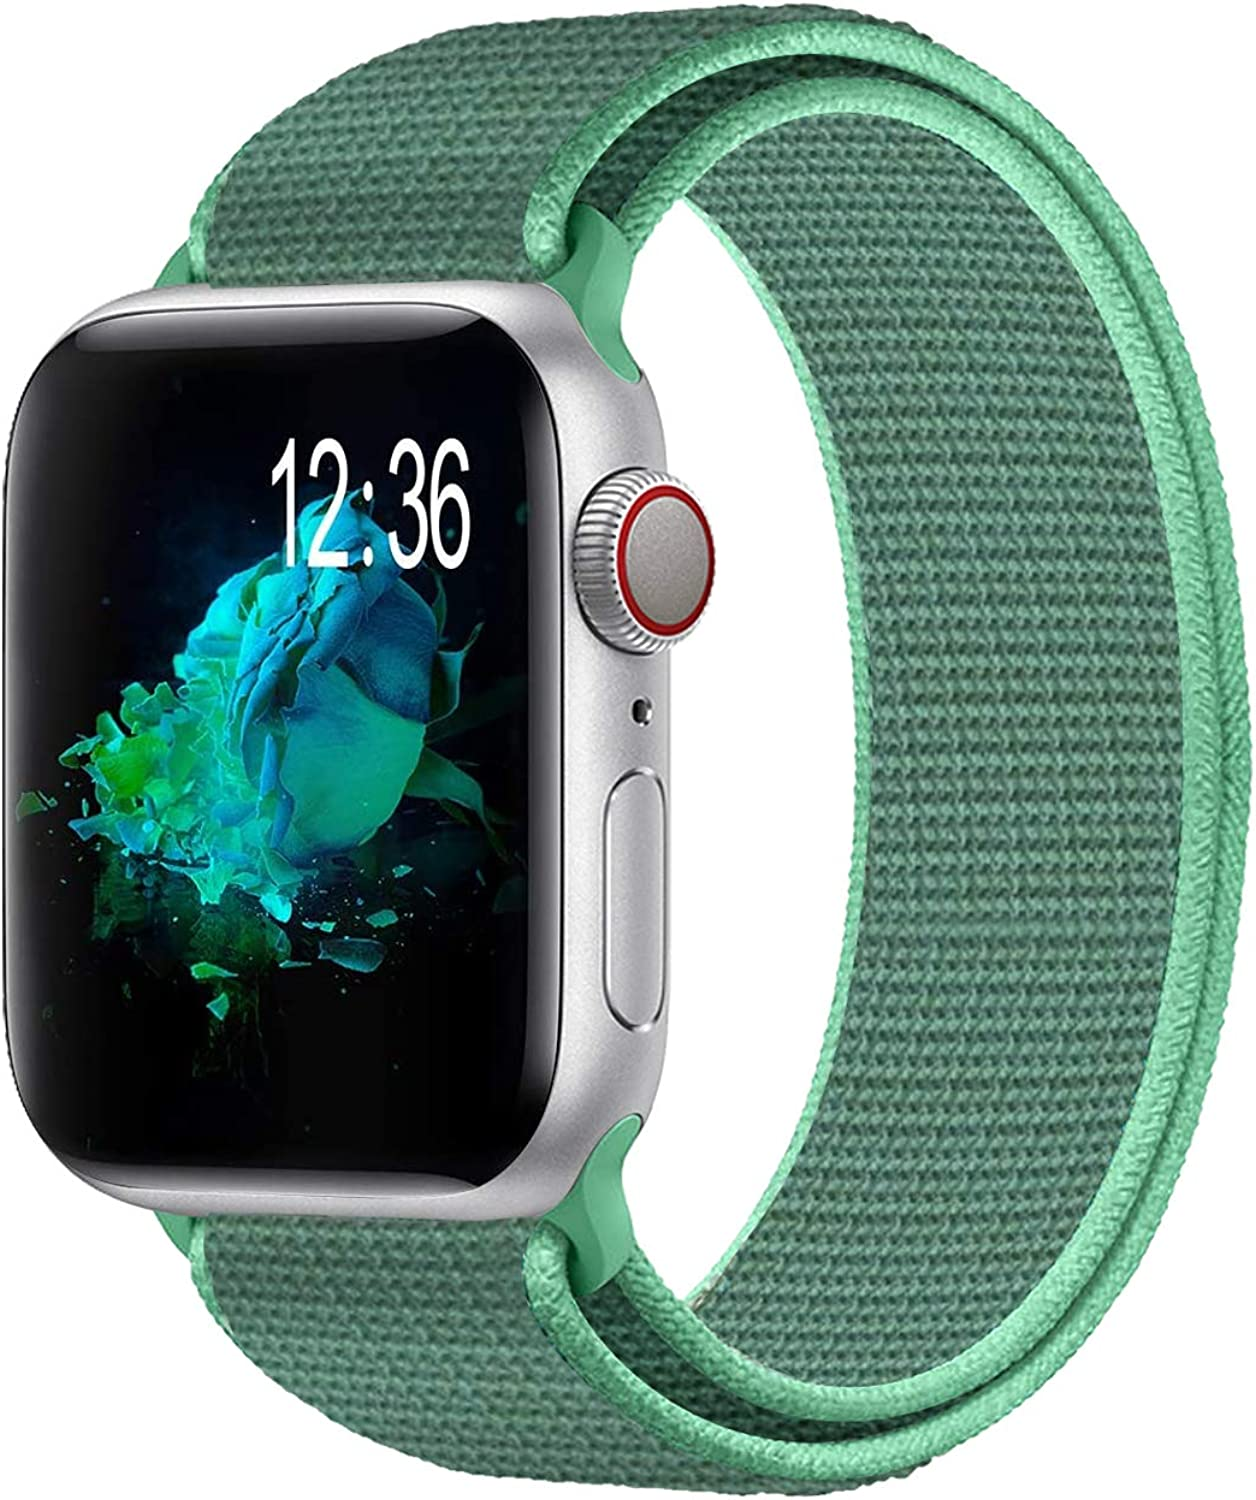 Watdpro Compatible with for Applle Watch Band 38mm 40mm 42mm 44mm, Soft Adjustable Lightweight Replacement Wristbands Compatible with for iWatch Series 6 5 4 3 2 1 SE